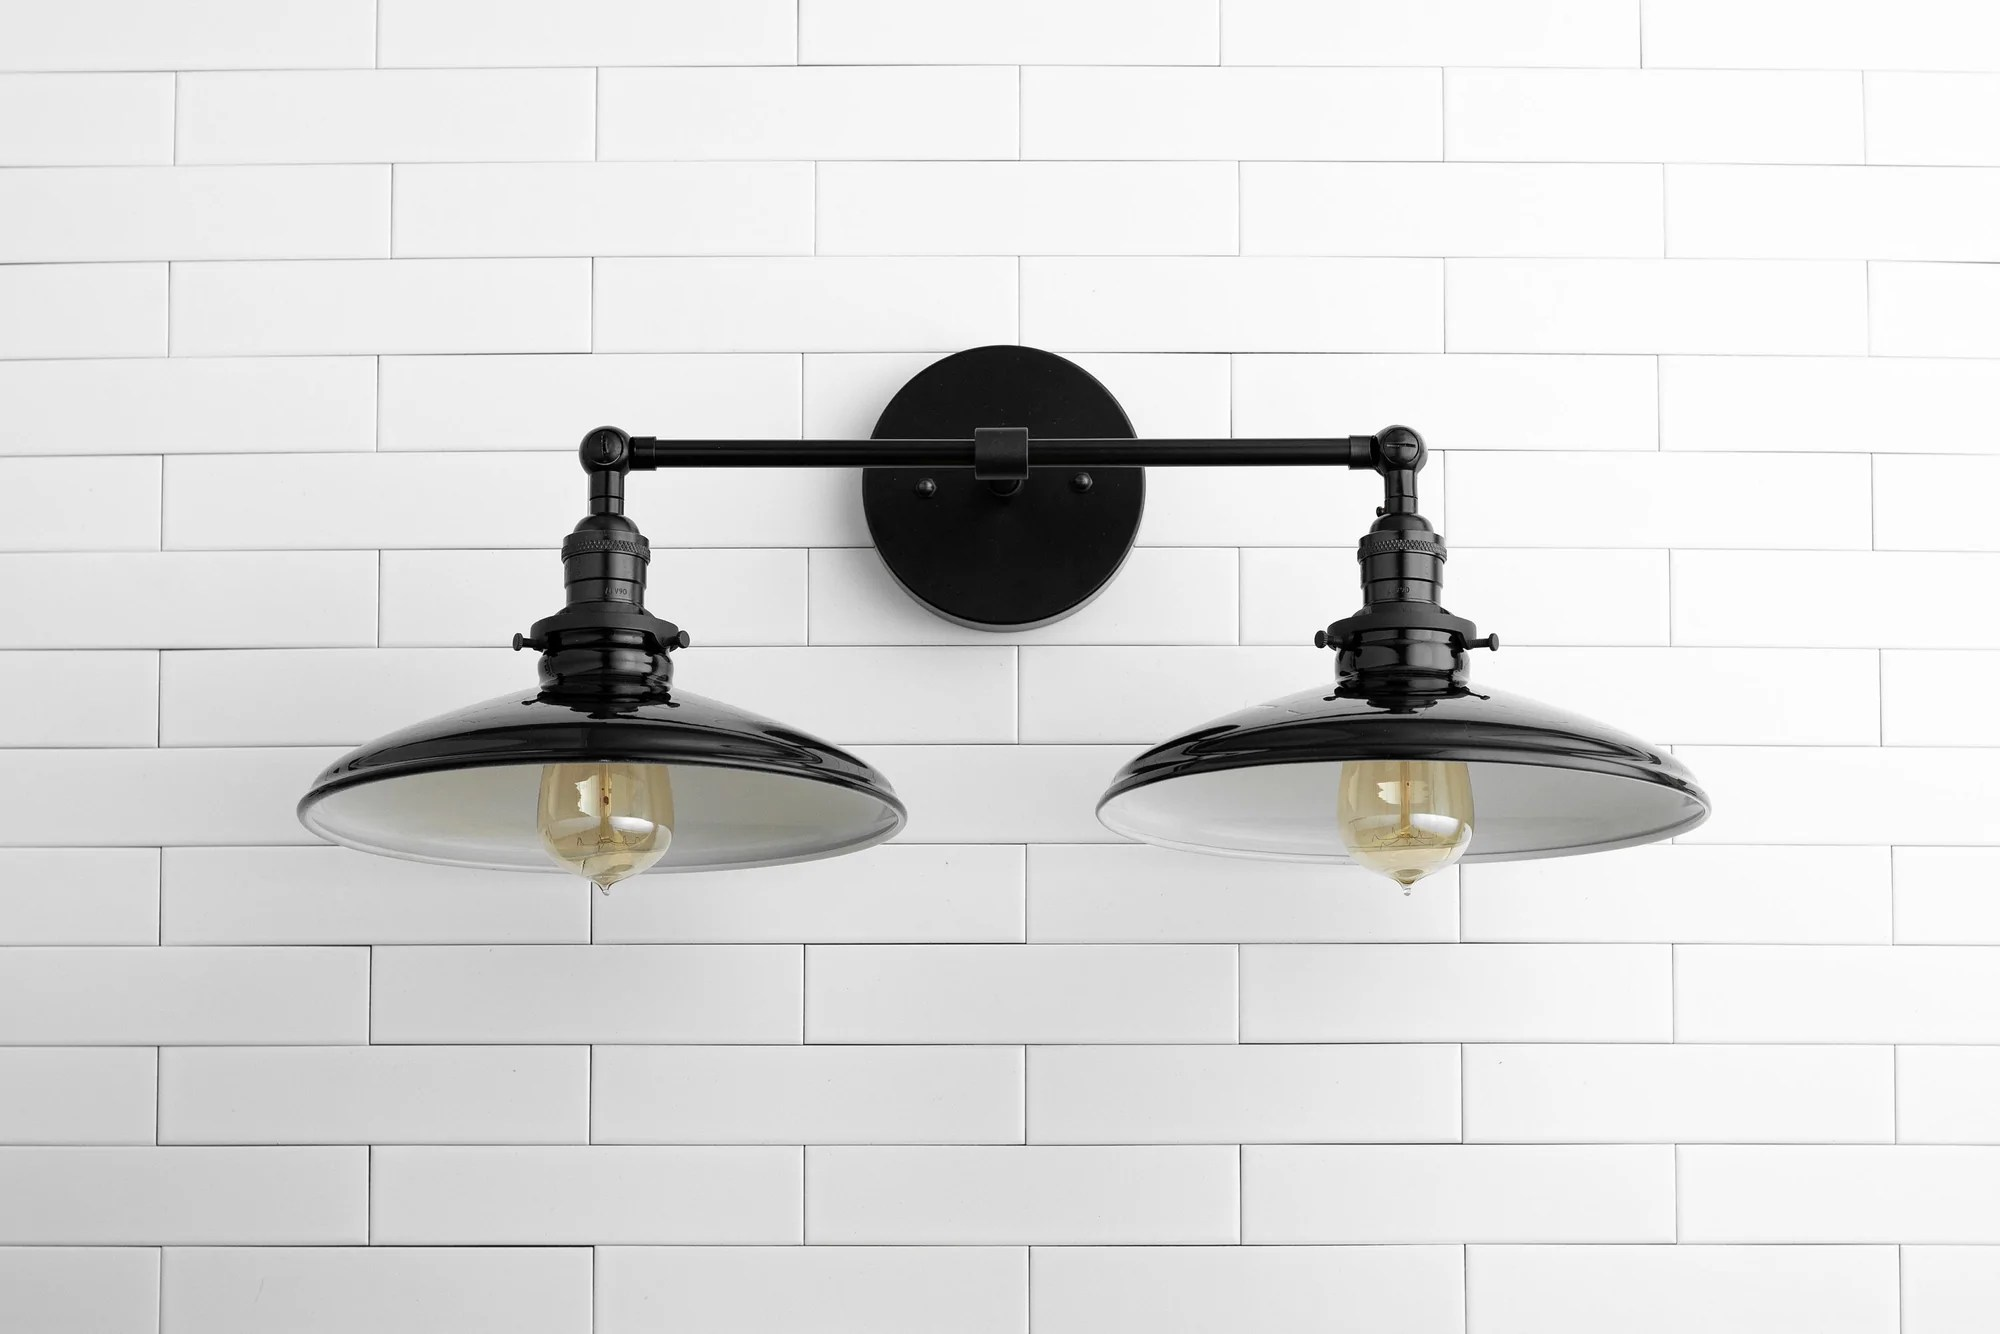 Bathroom Light Fixtures Vanity Lighting Steampunk Wall Lamp Farmhouse Lighting Black Light Fixture Wall Mount Lighting Vanity Bathroom Light